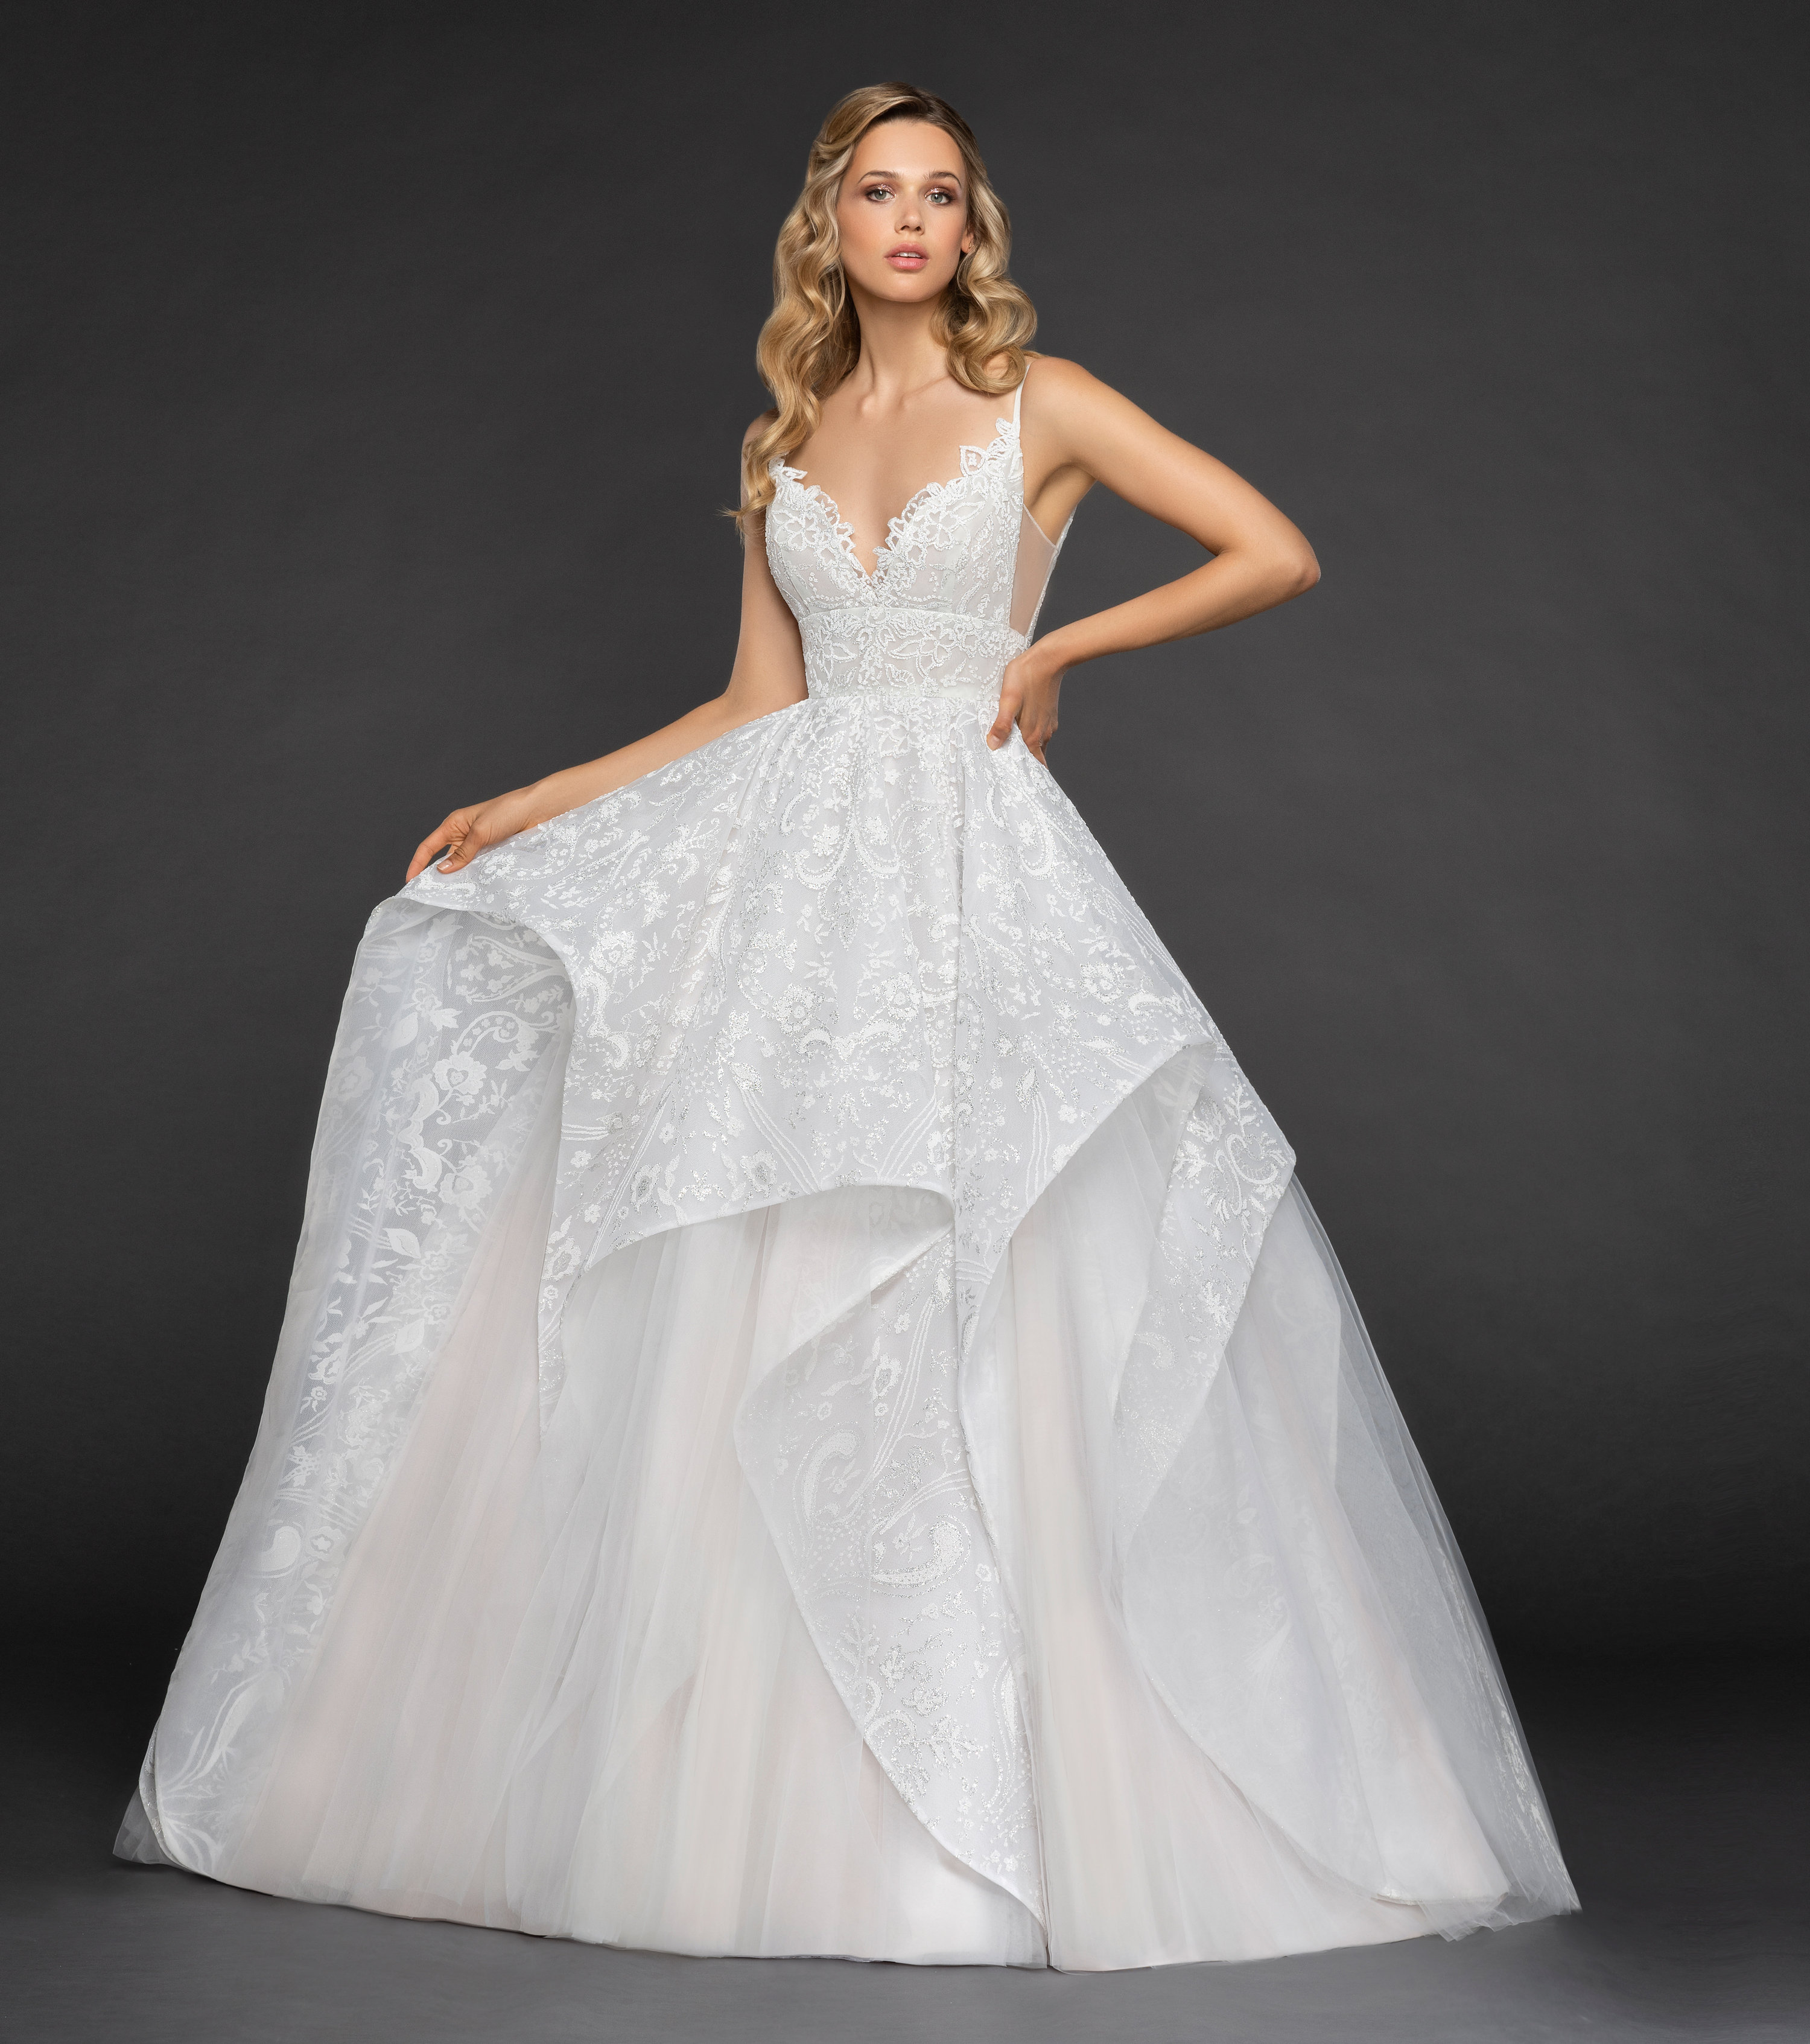 Wedding Ball Gowns With Straps: Scalloped Sweetheart Neckline Spaghetti Strap Embroidered